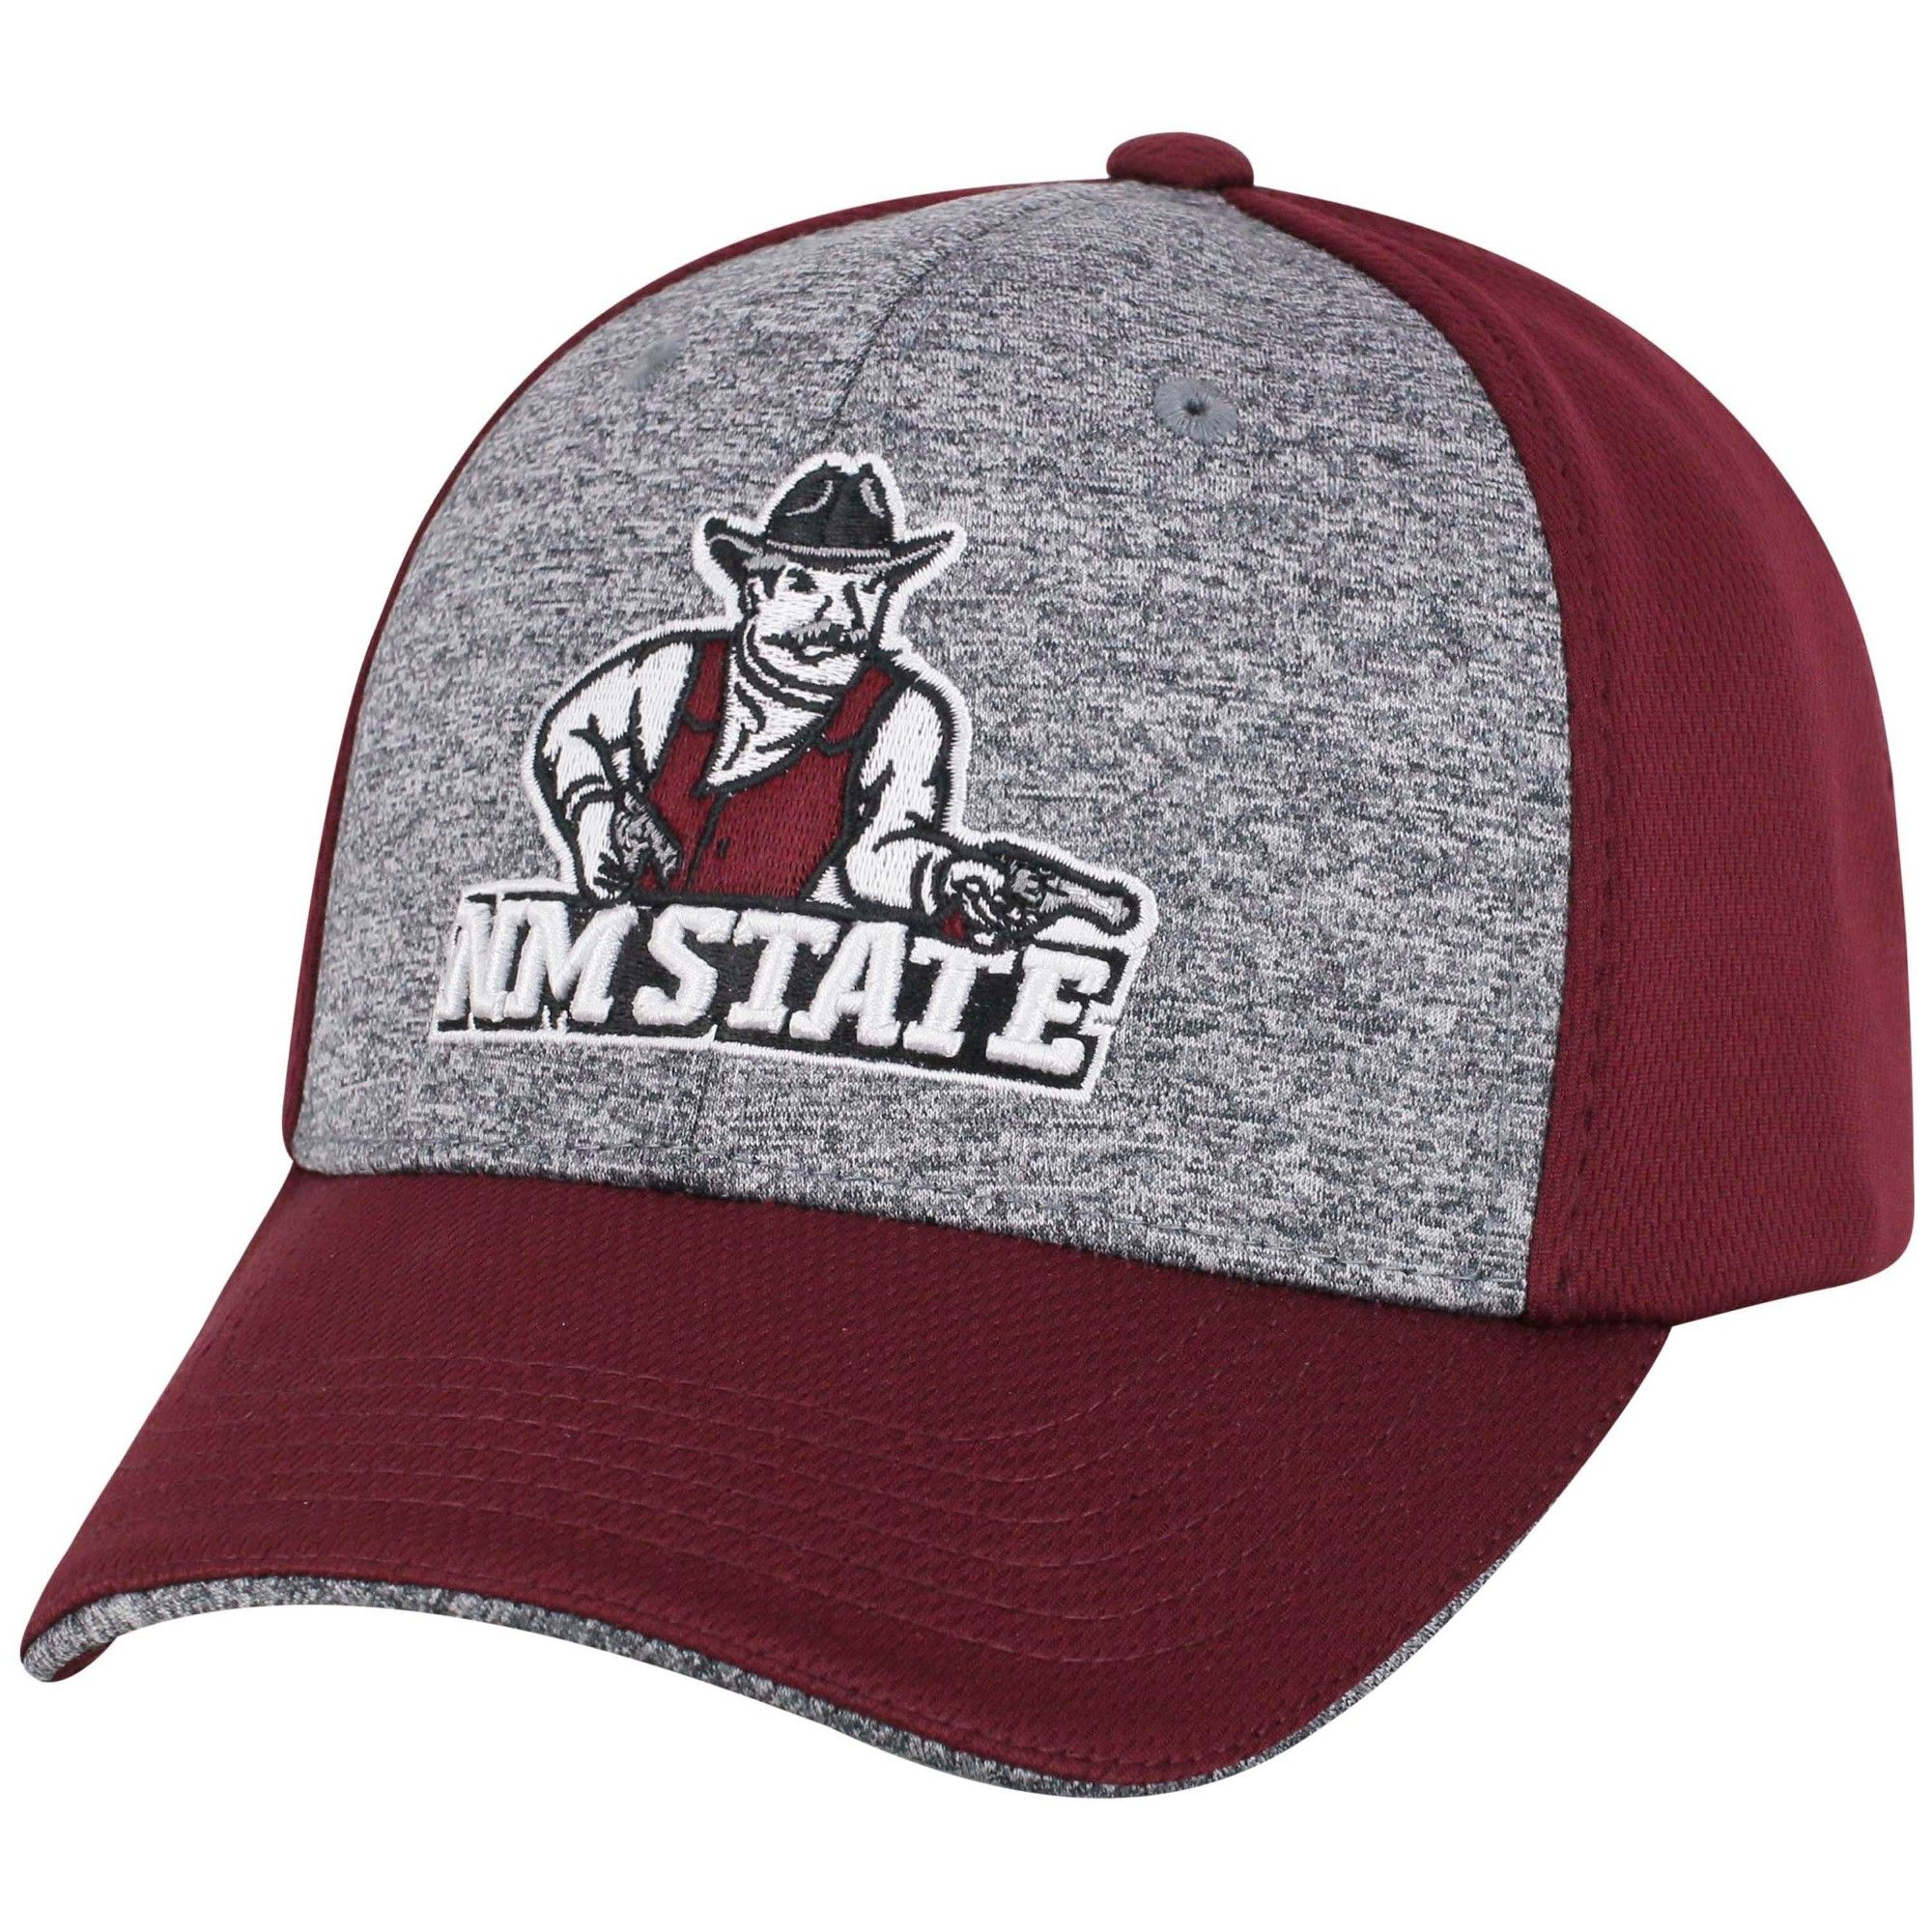 3a74d8a45c9 NCAA Men s New Mexico State Aggies Velcro Baseball Hat - Gray ...